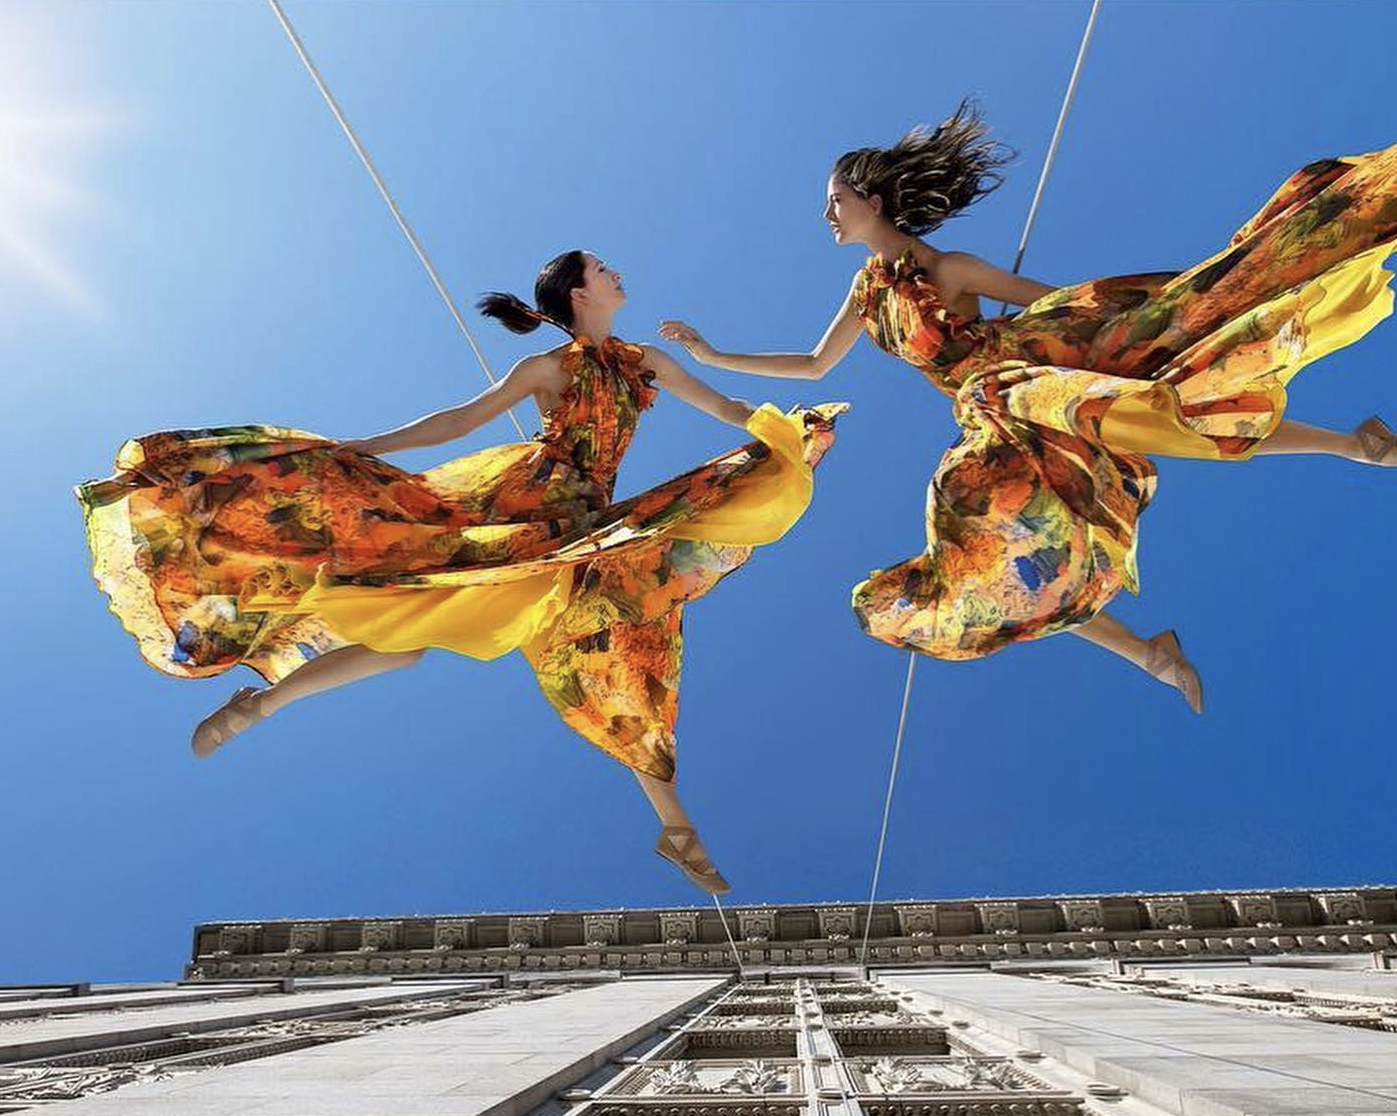 Crush the weekend in Birmingham with a free aerial performance + more, Sept. 24-26